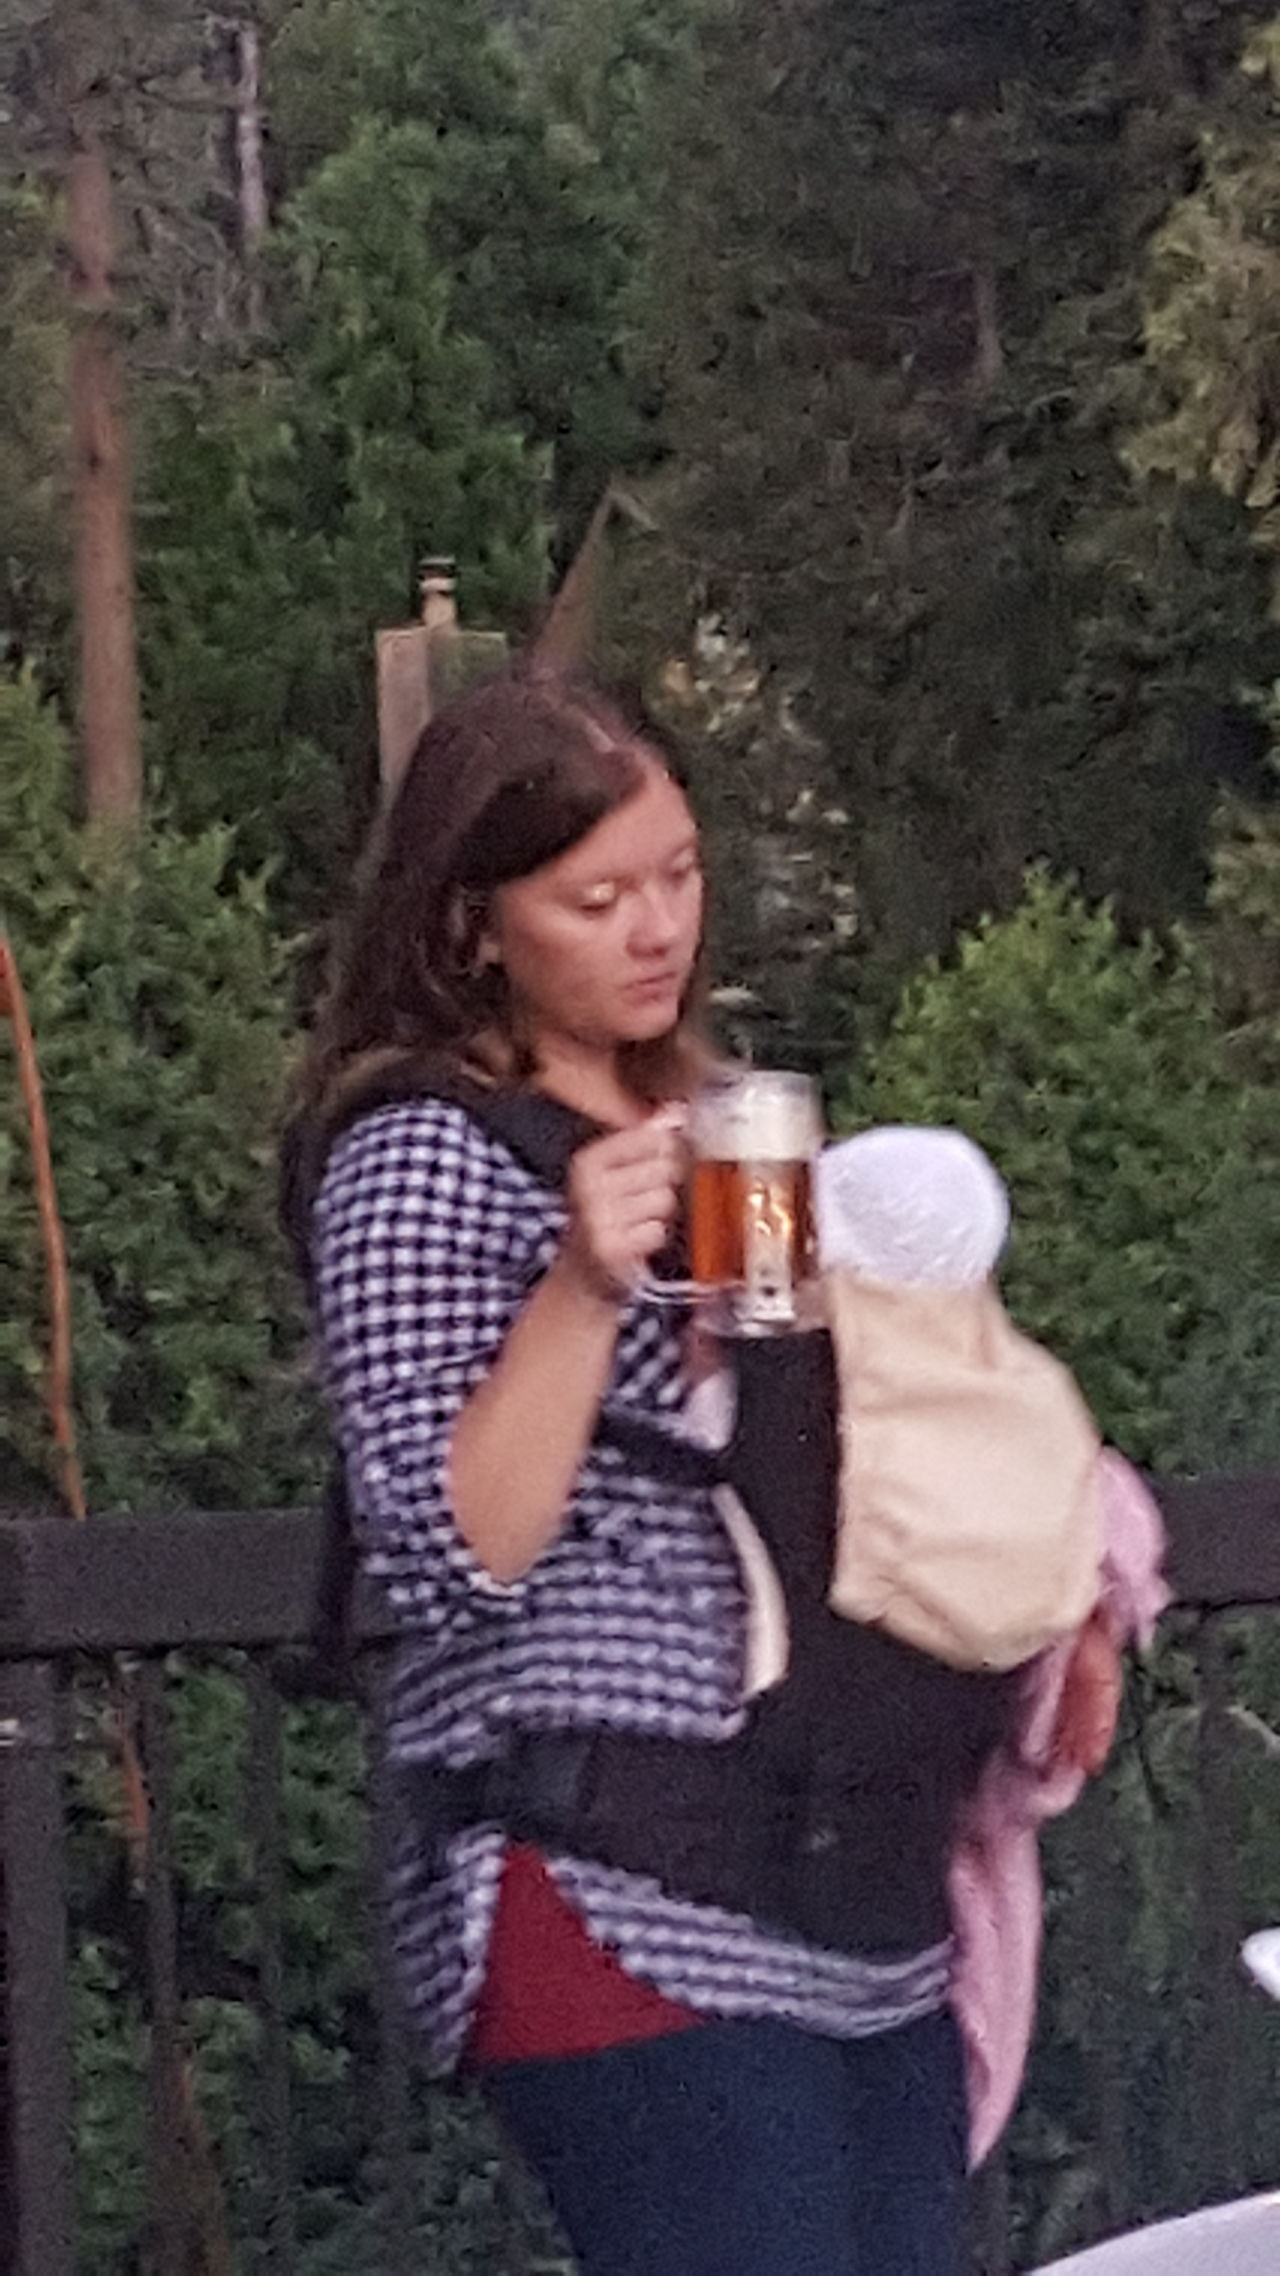 Baby And Beer